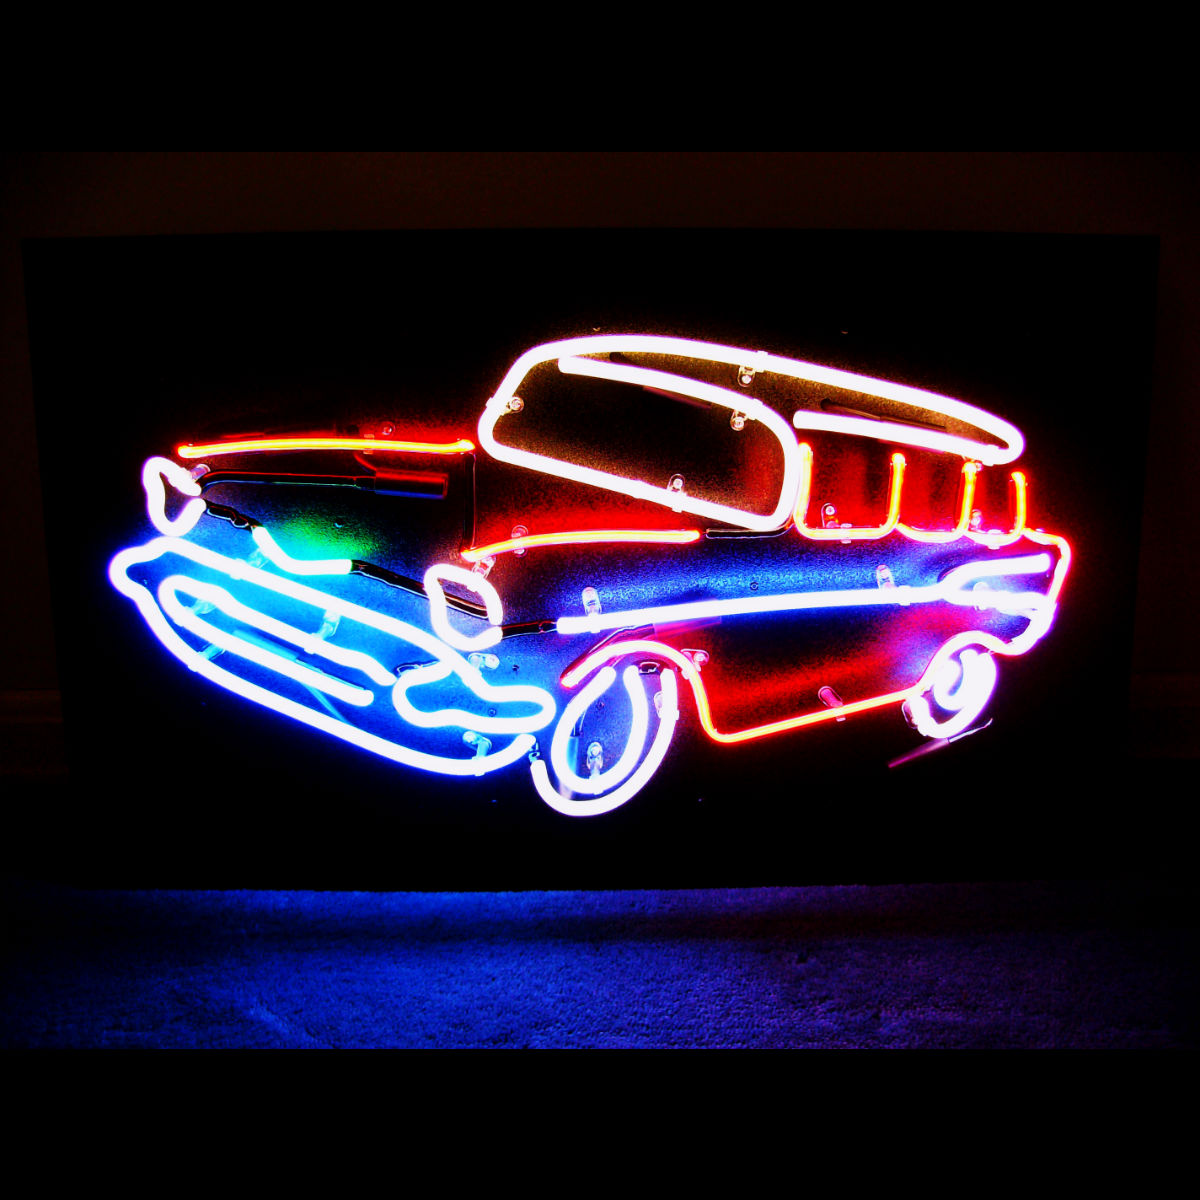 resized neon car silhouette.jpg